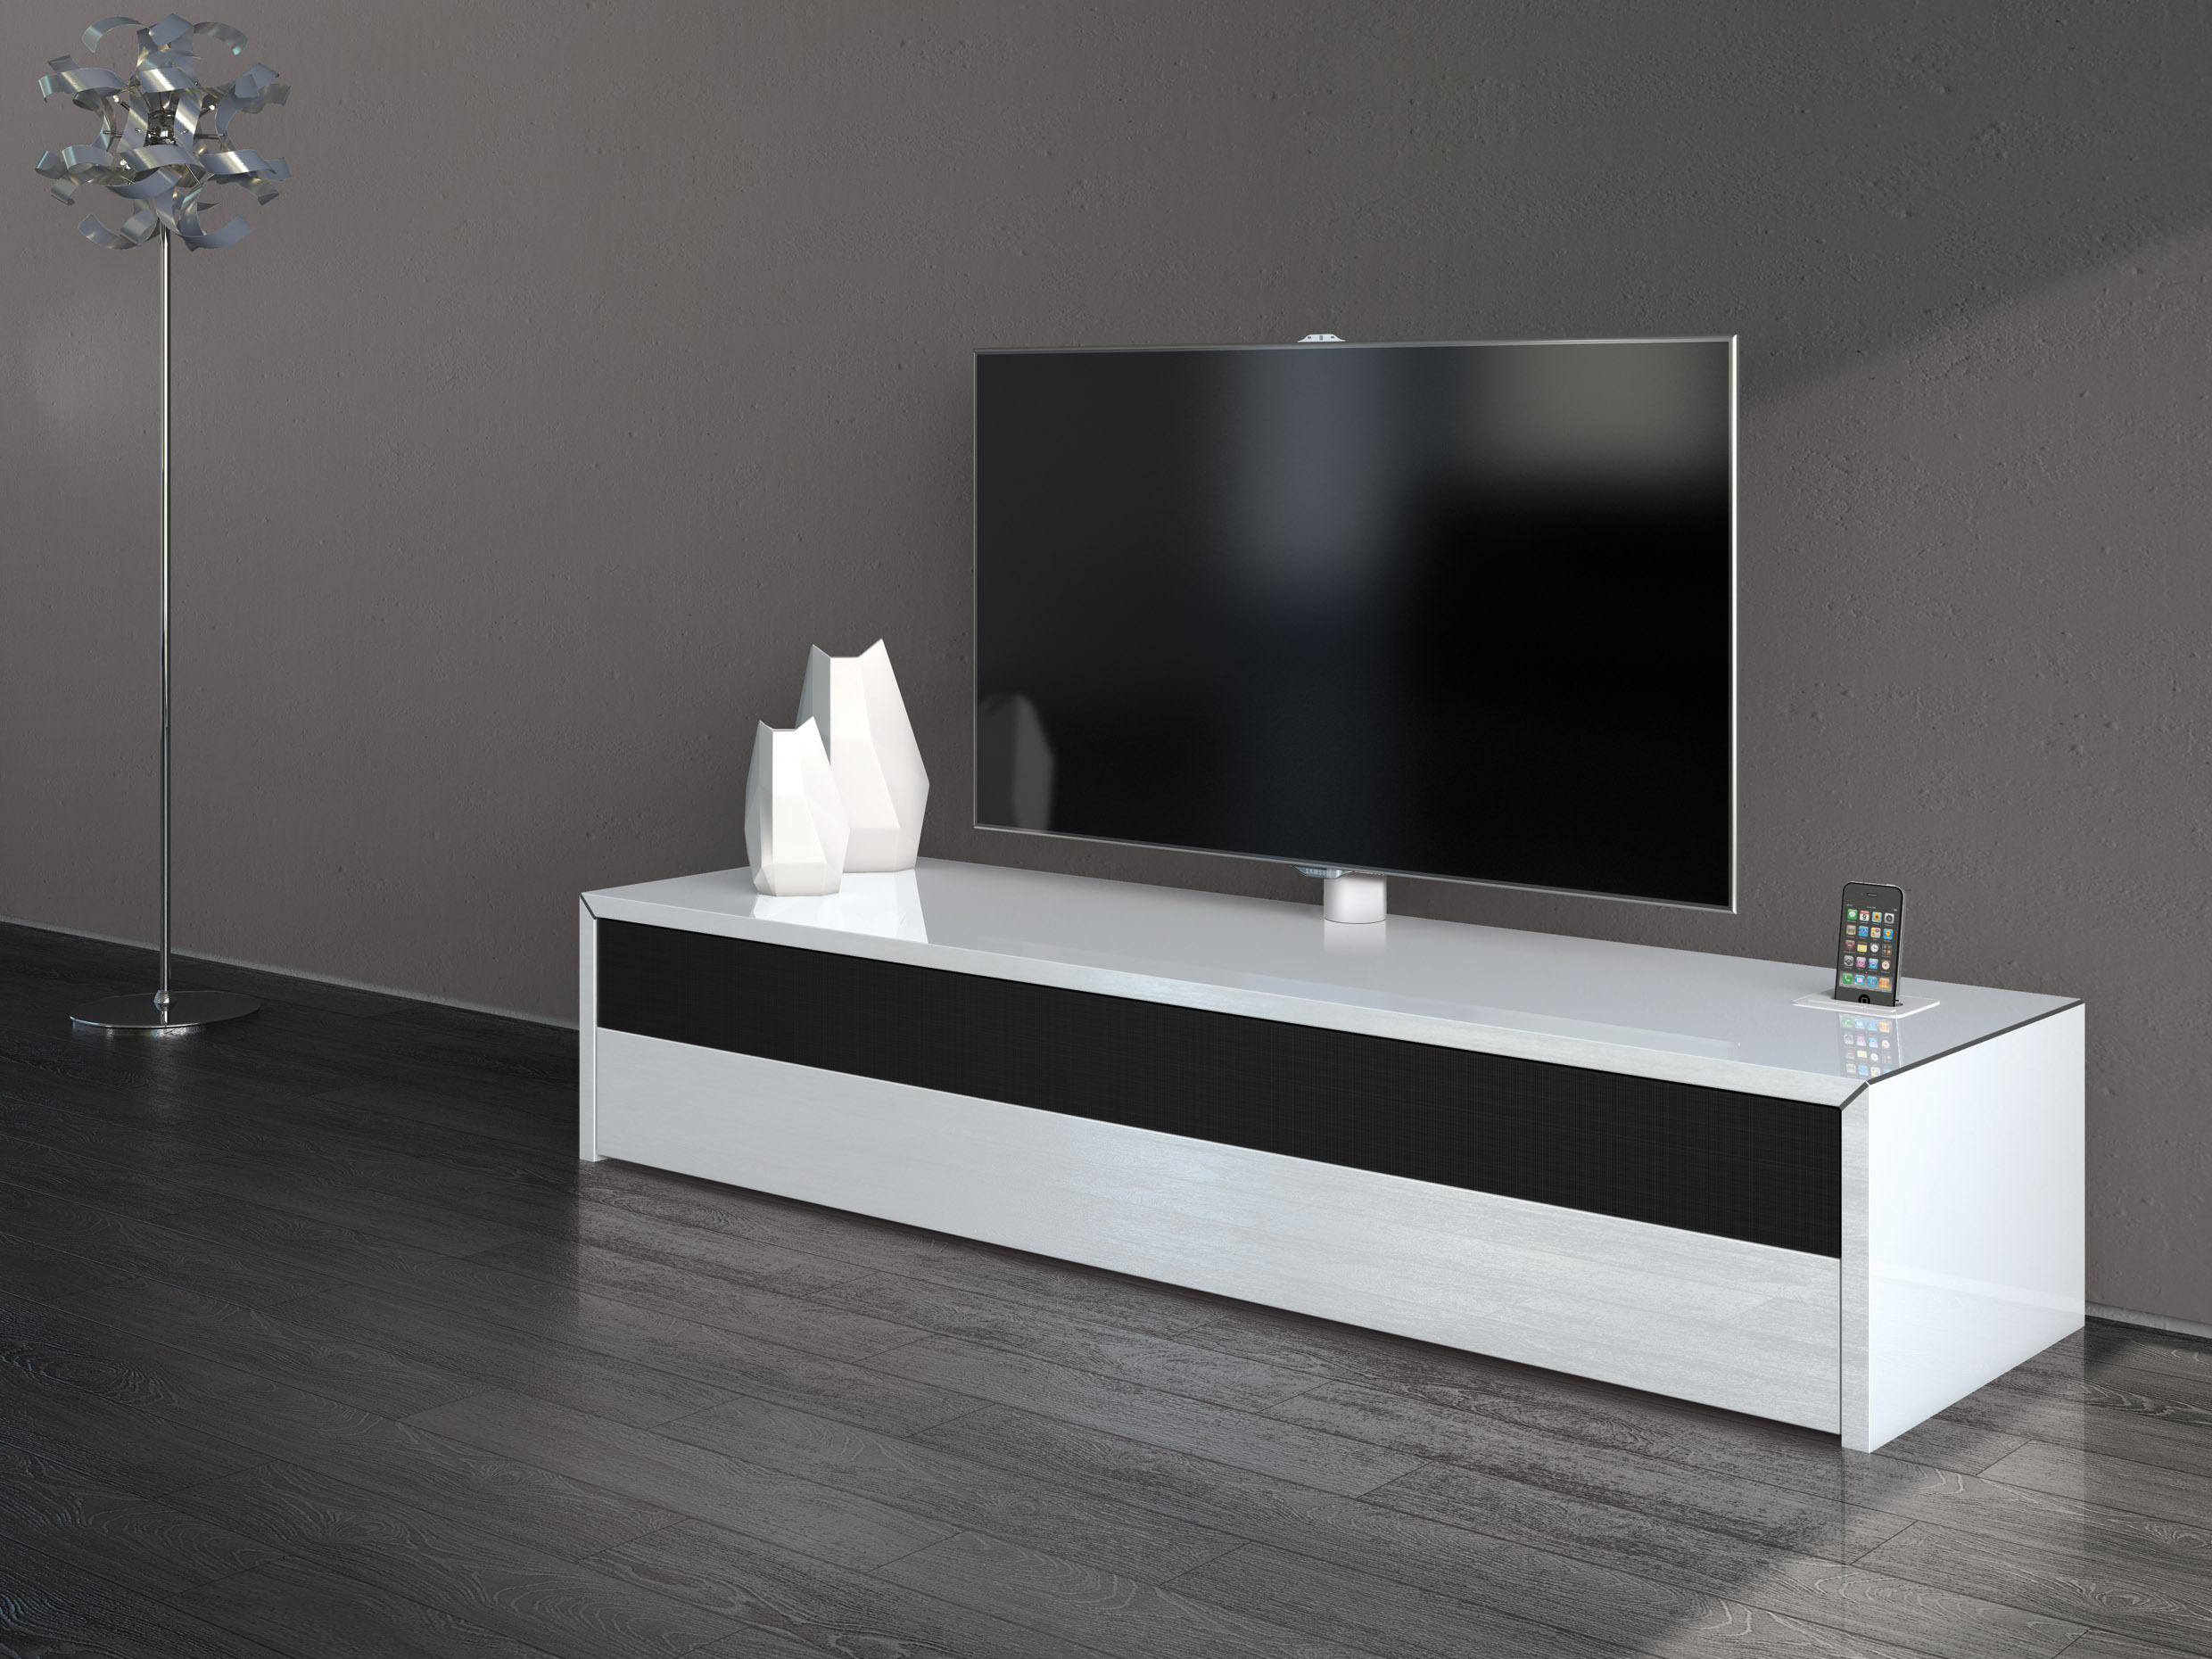 schnepel m bel archive tv m bel und hifi m bel guide. Black Bedroom Furniture Sets. Home Design Ideas